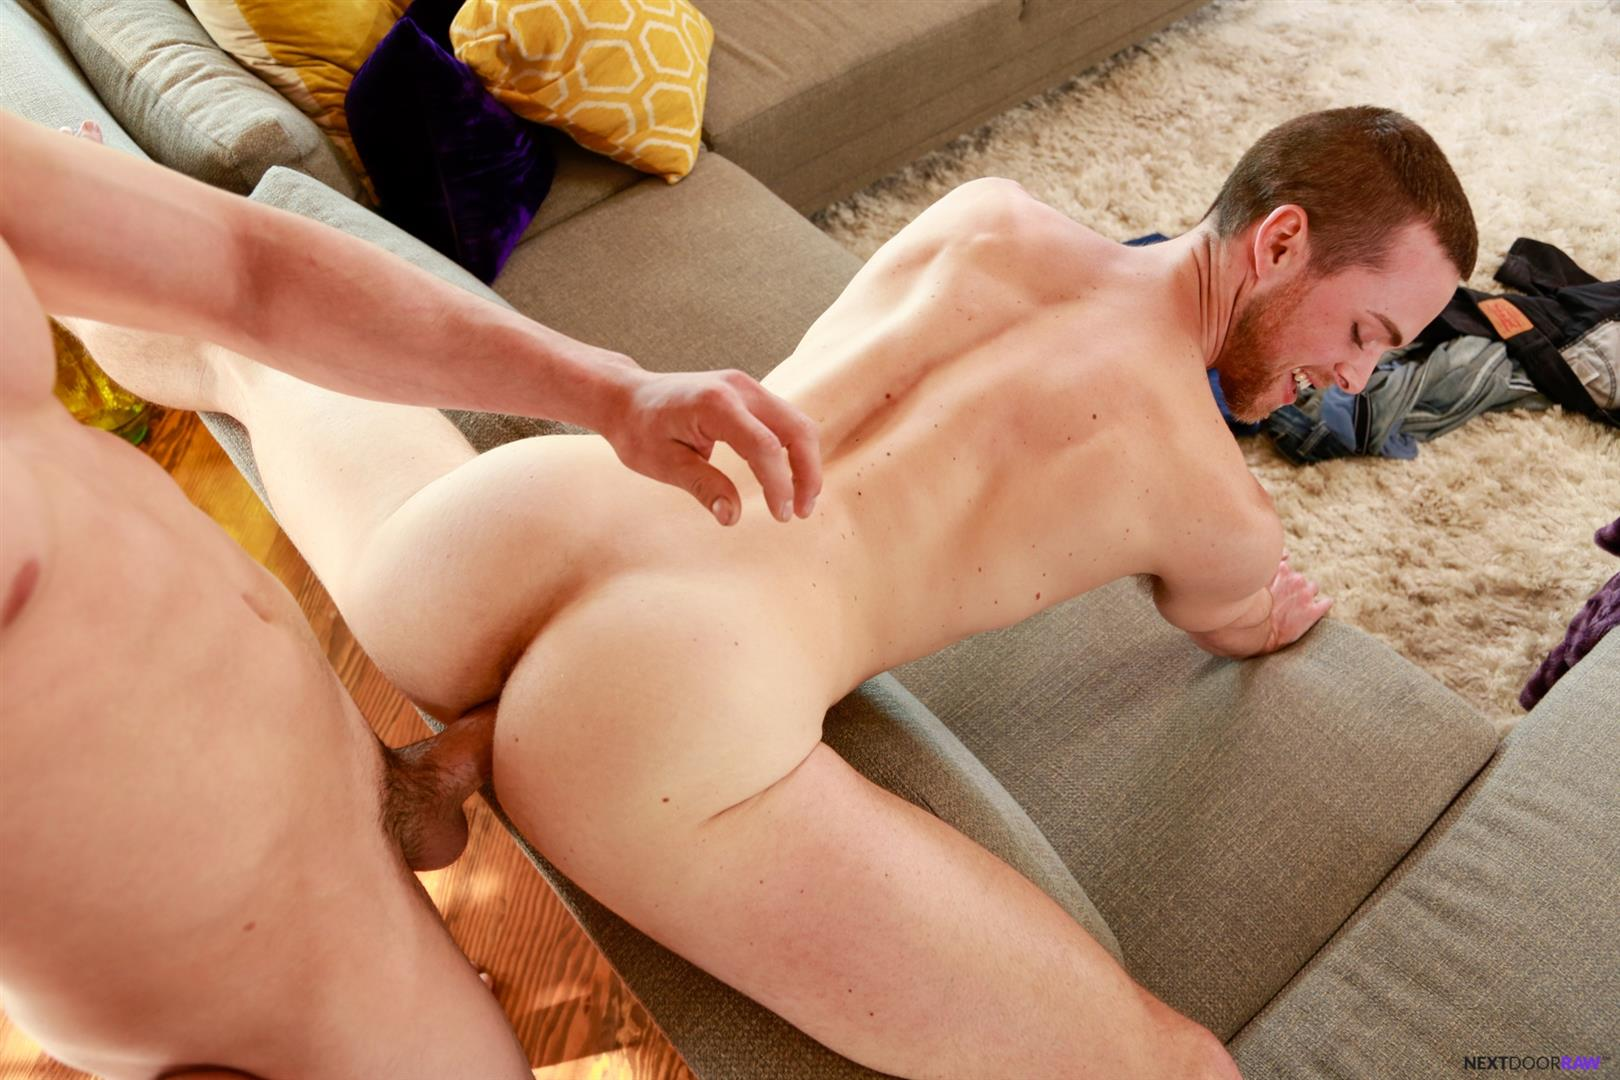 Next-Door-Raw-Derrick-Dime-and-Brandon-Moore-Roommates-Bareback-Sex-Amateur-Gay-Porn-12 Next Door Raw:  Derrick Dime Barebacks Brandon Moore With His Fat Cock